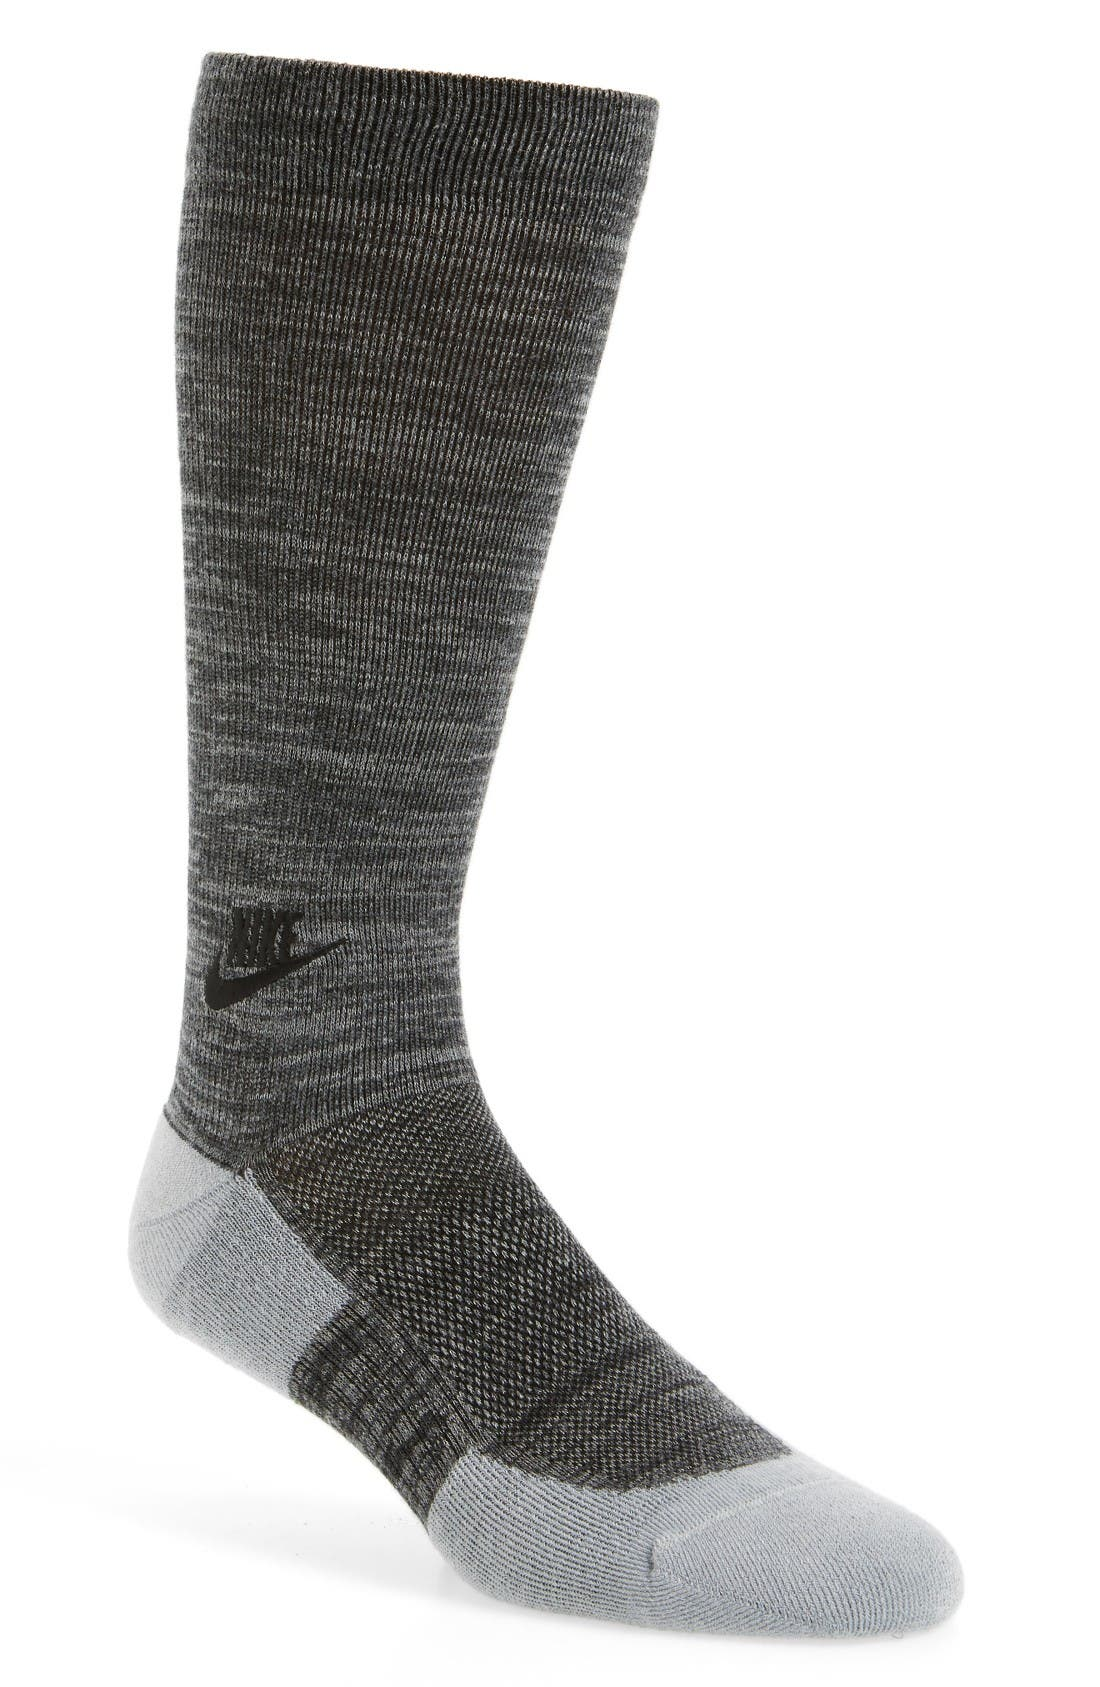 NIKE Lightweight Warmth Crew Socks